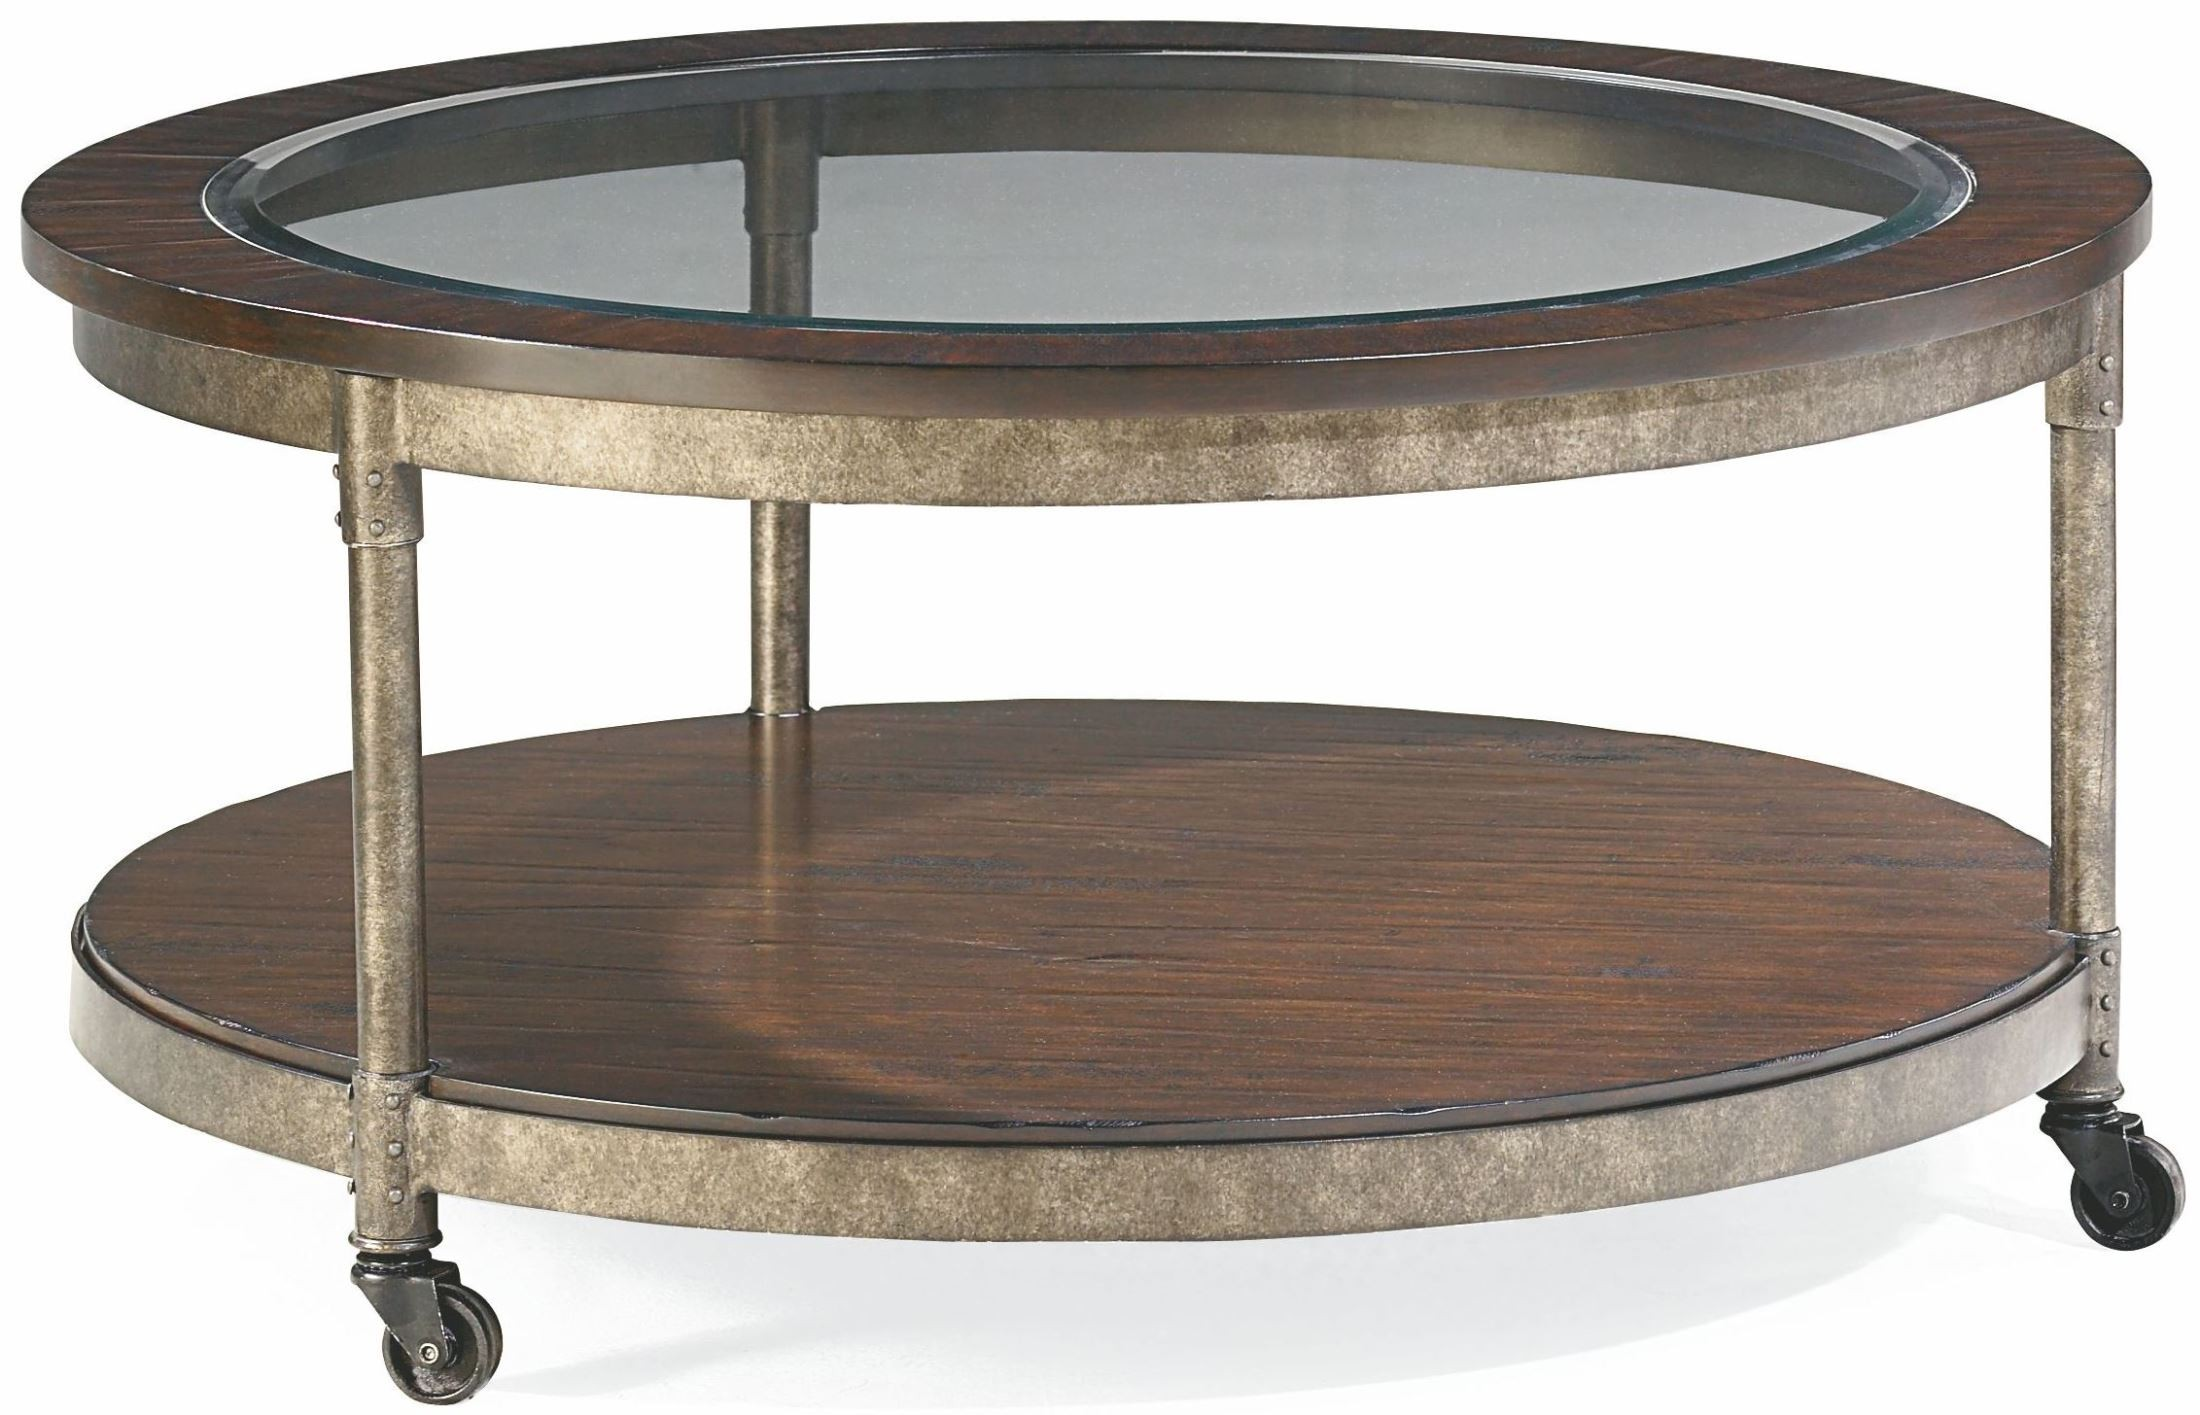 Structure Heavily Distressed Brown Round Cocktail Table T30020 T3002005 00 Hammary